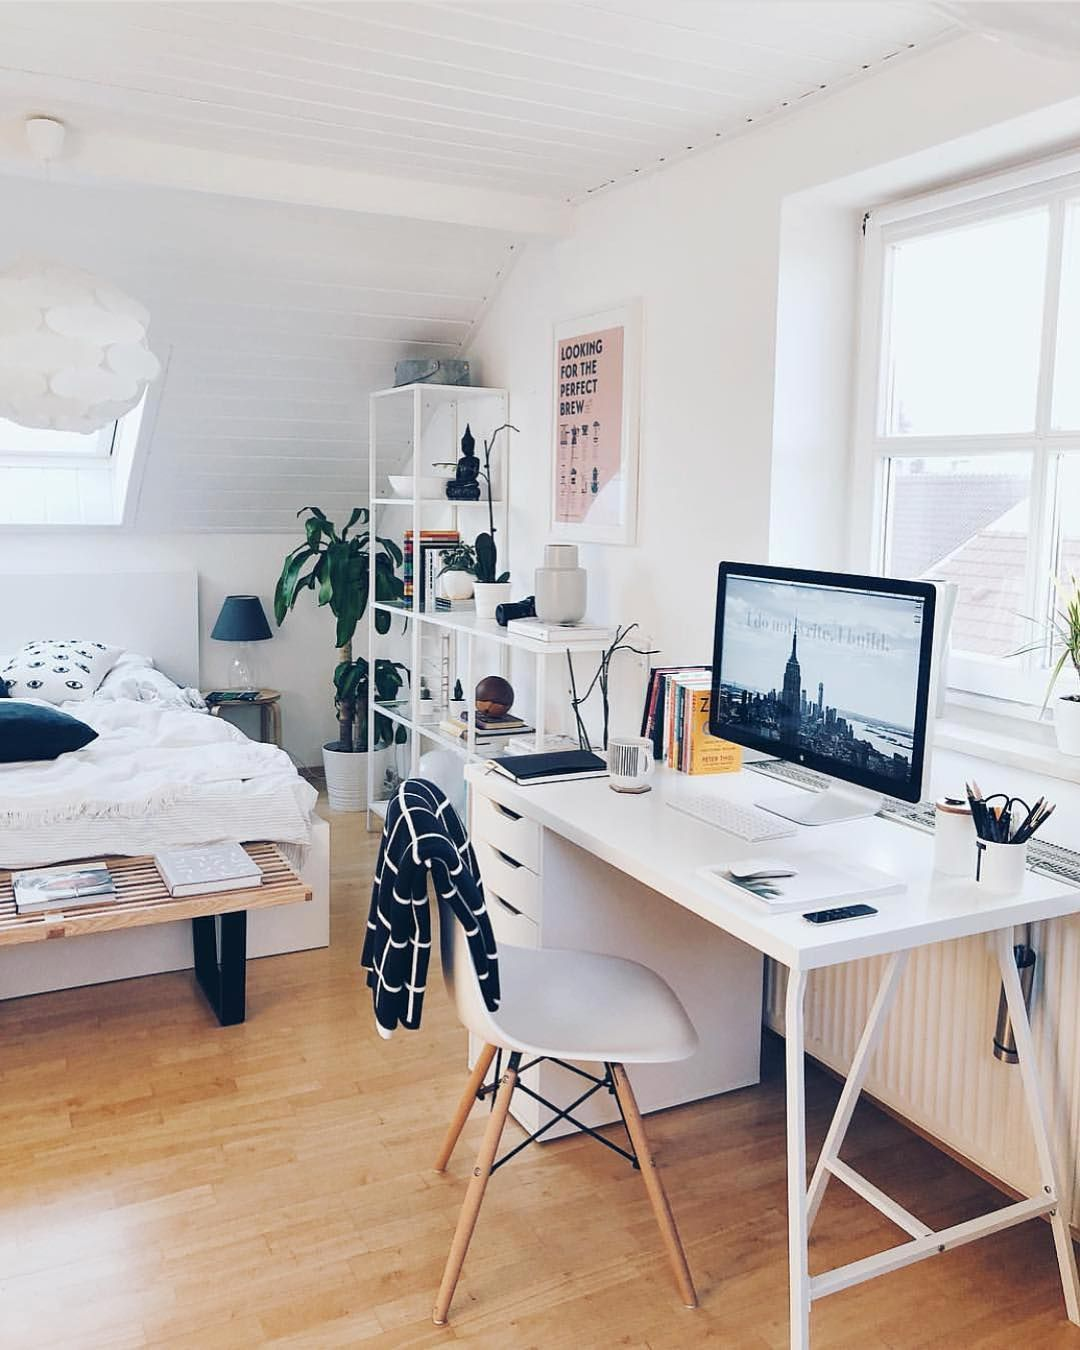 Bedroom And Workspace Setup By @tinalkeen In 2019